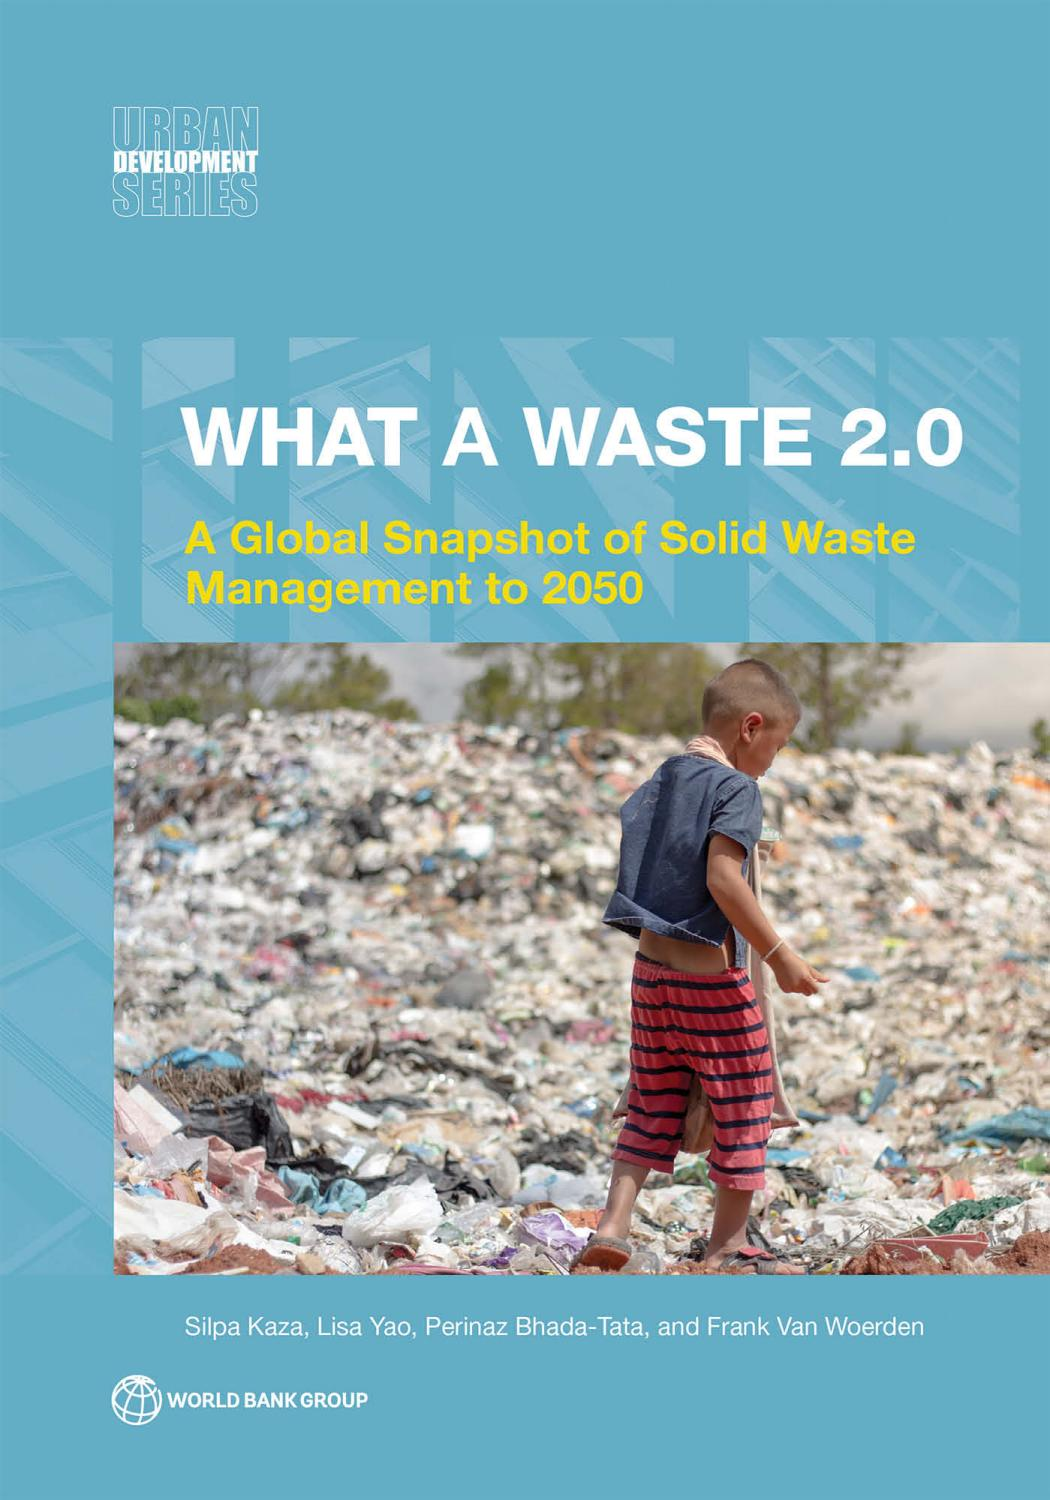 What a Waste 2.0 by World Bank Group Publications issuu